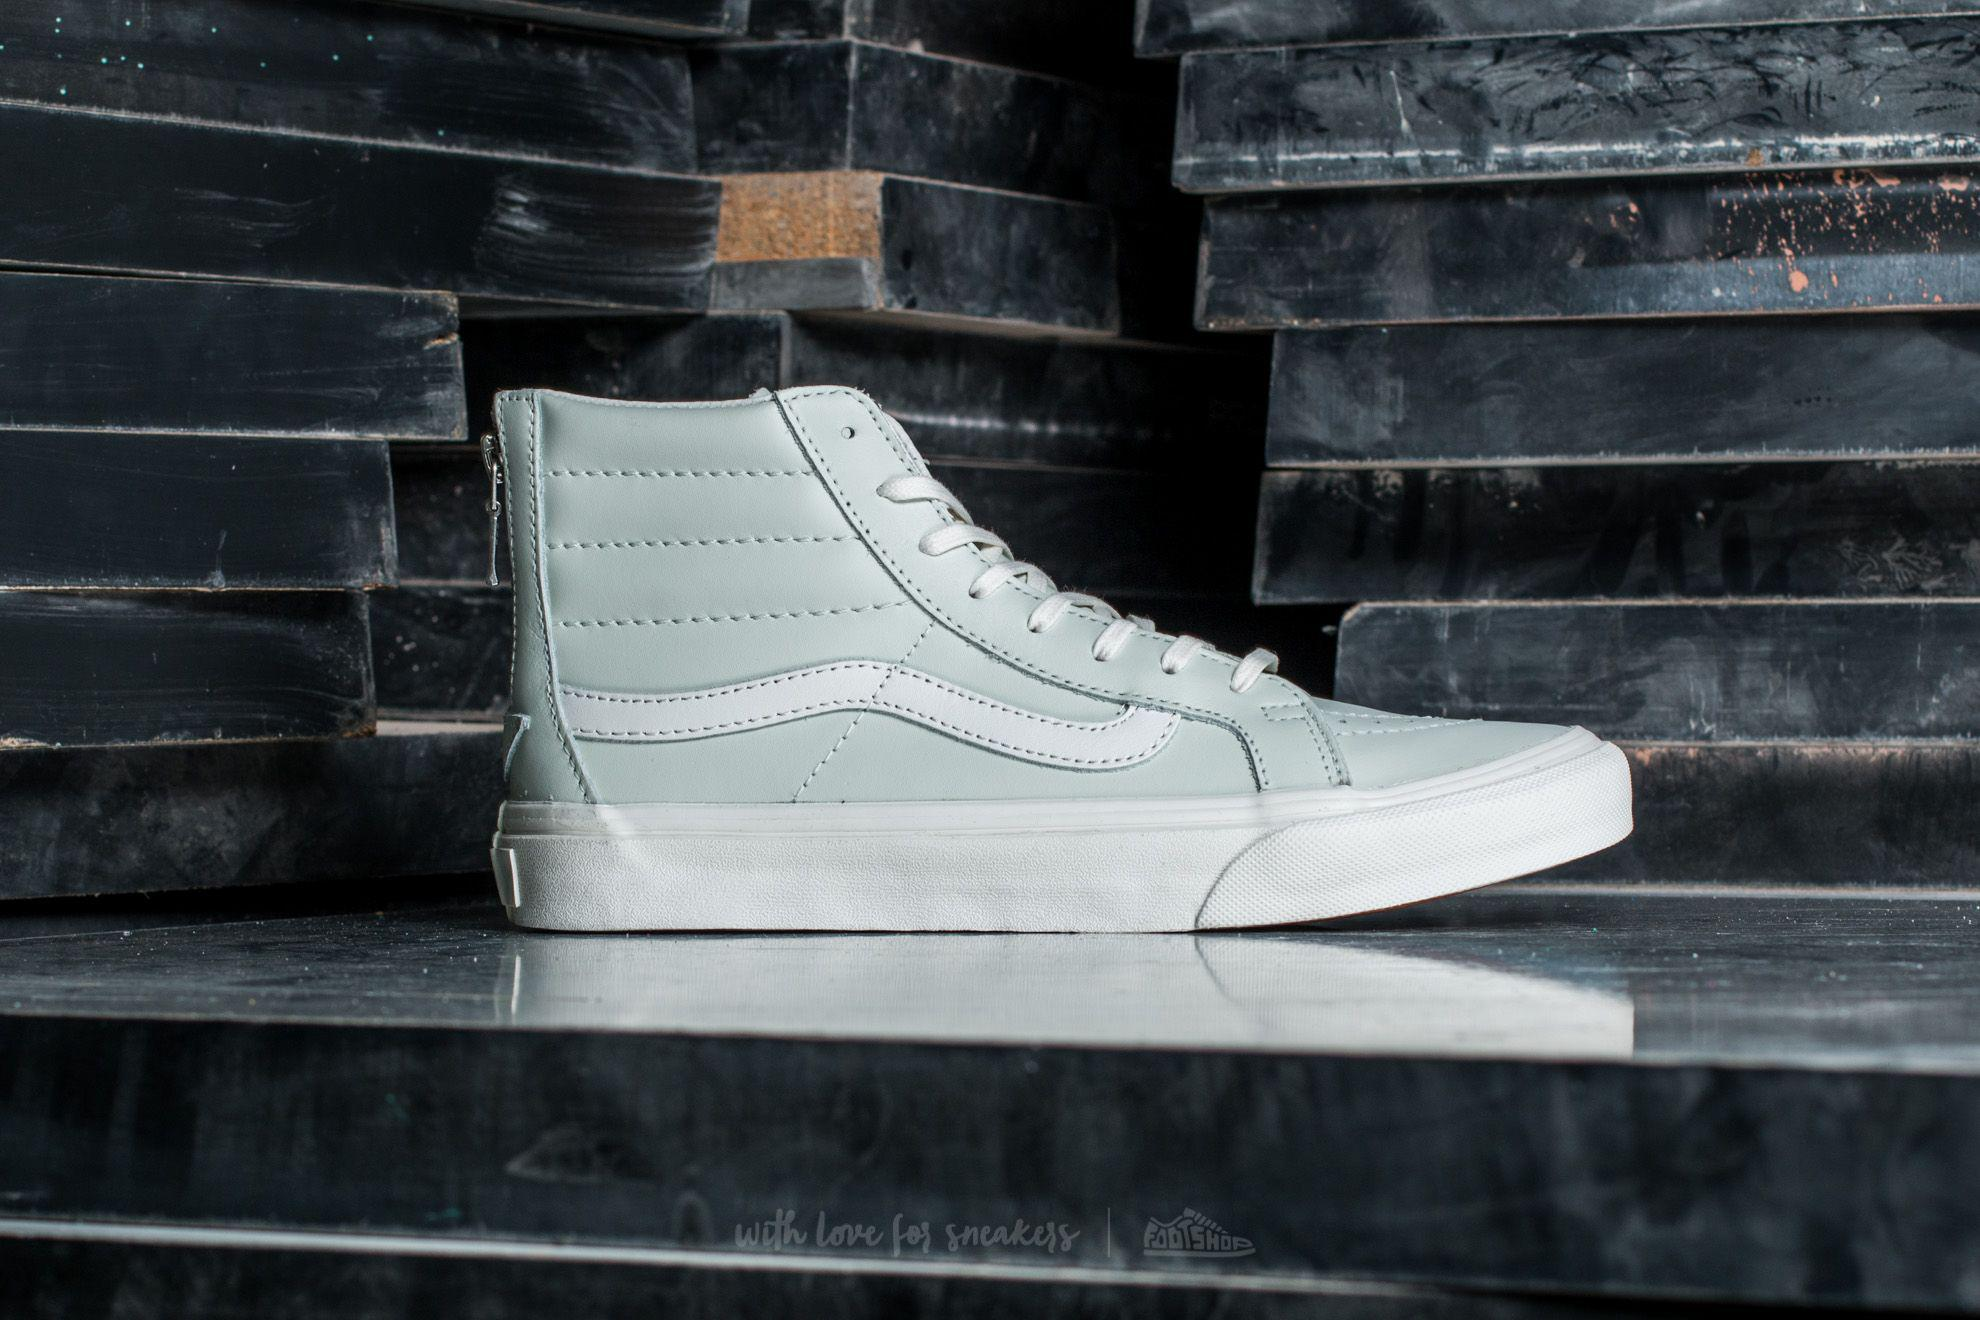 ad2444c7269e1c Lyst - Vans Sk8-hi Slim Zip Leather Zephyr Blue  Blanc De Blanc in Blue